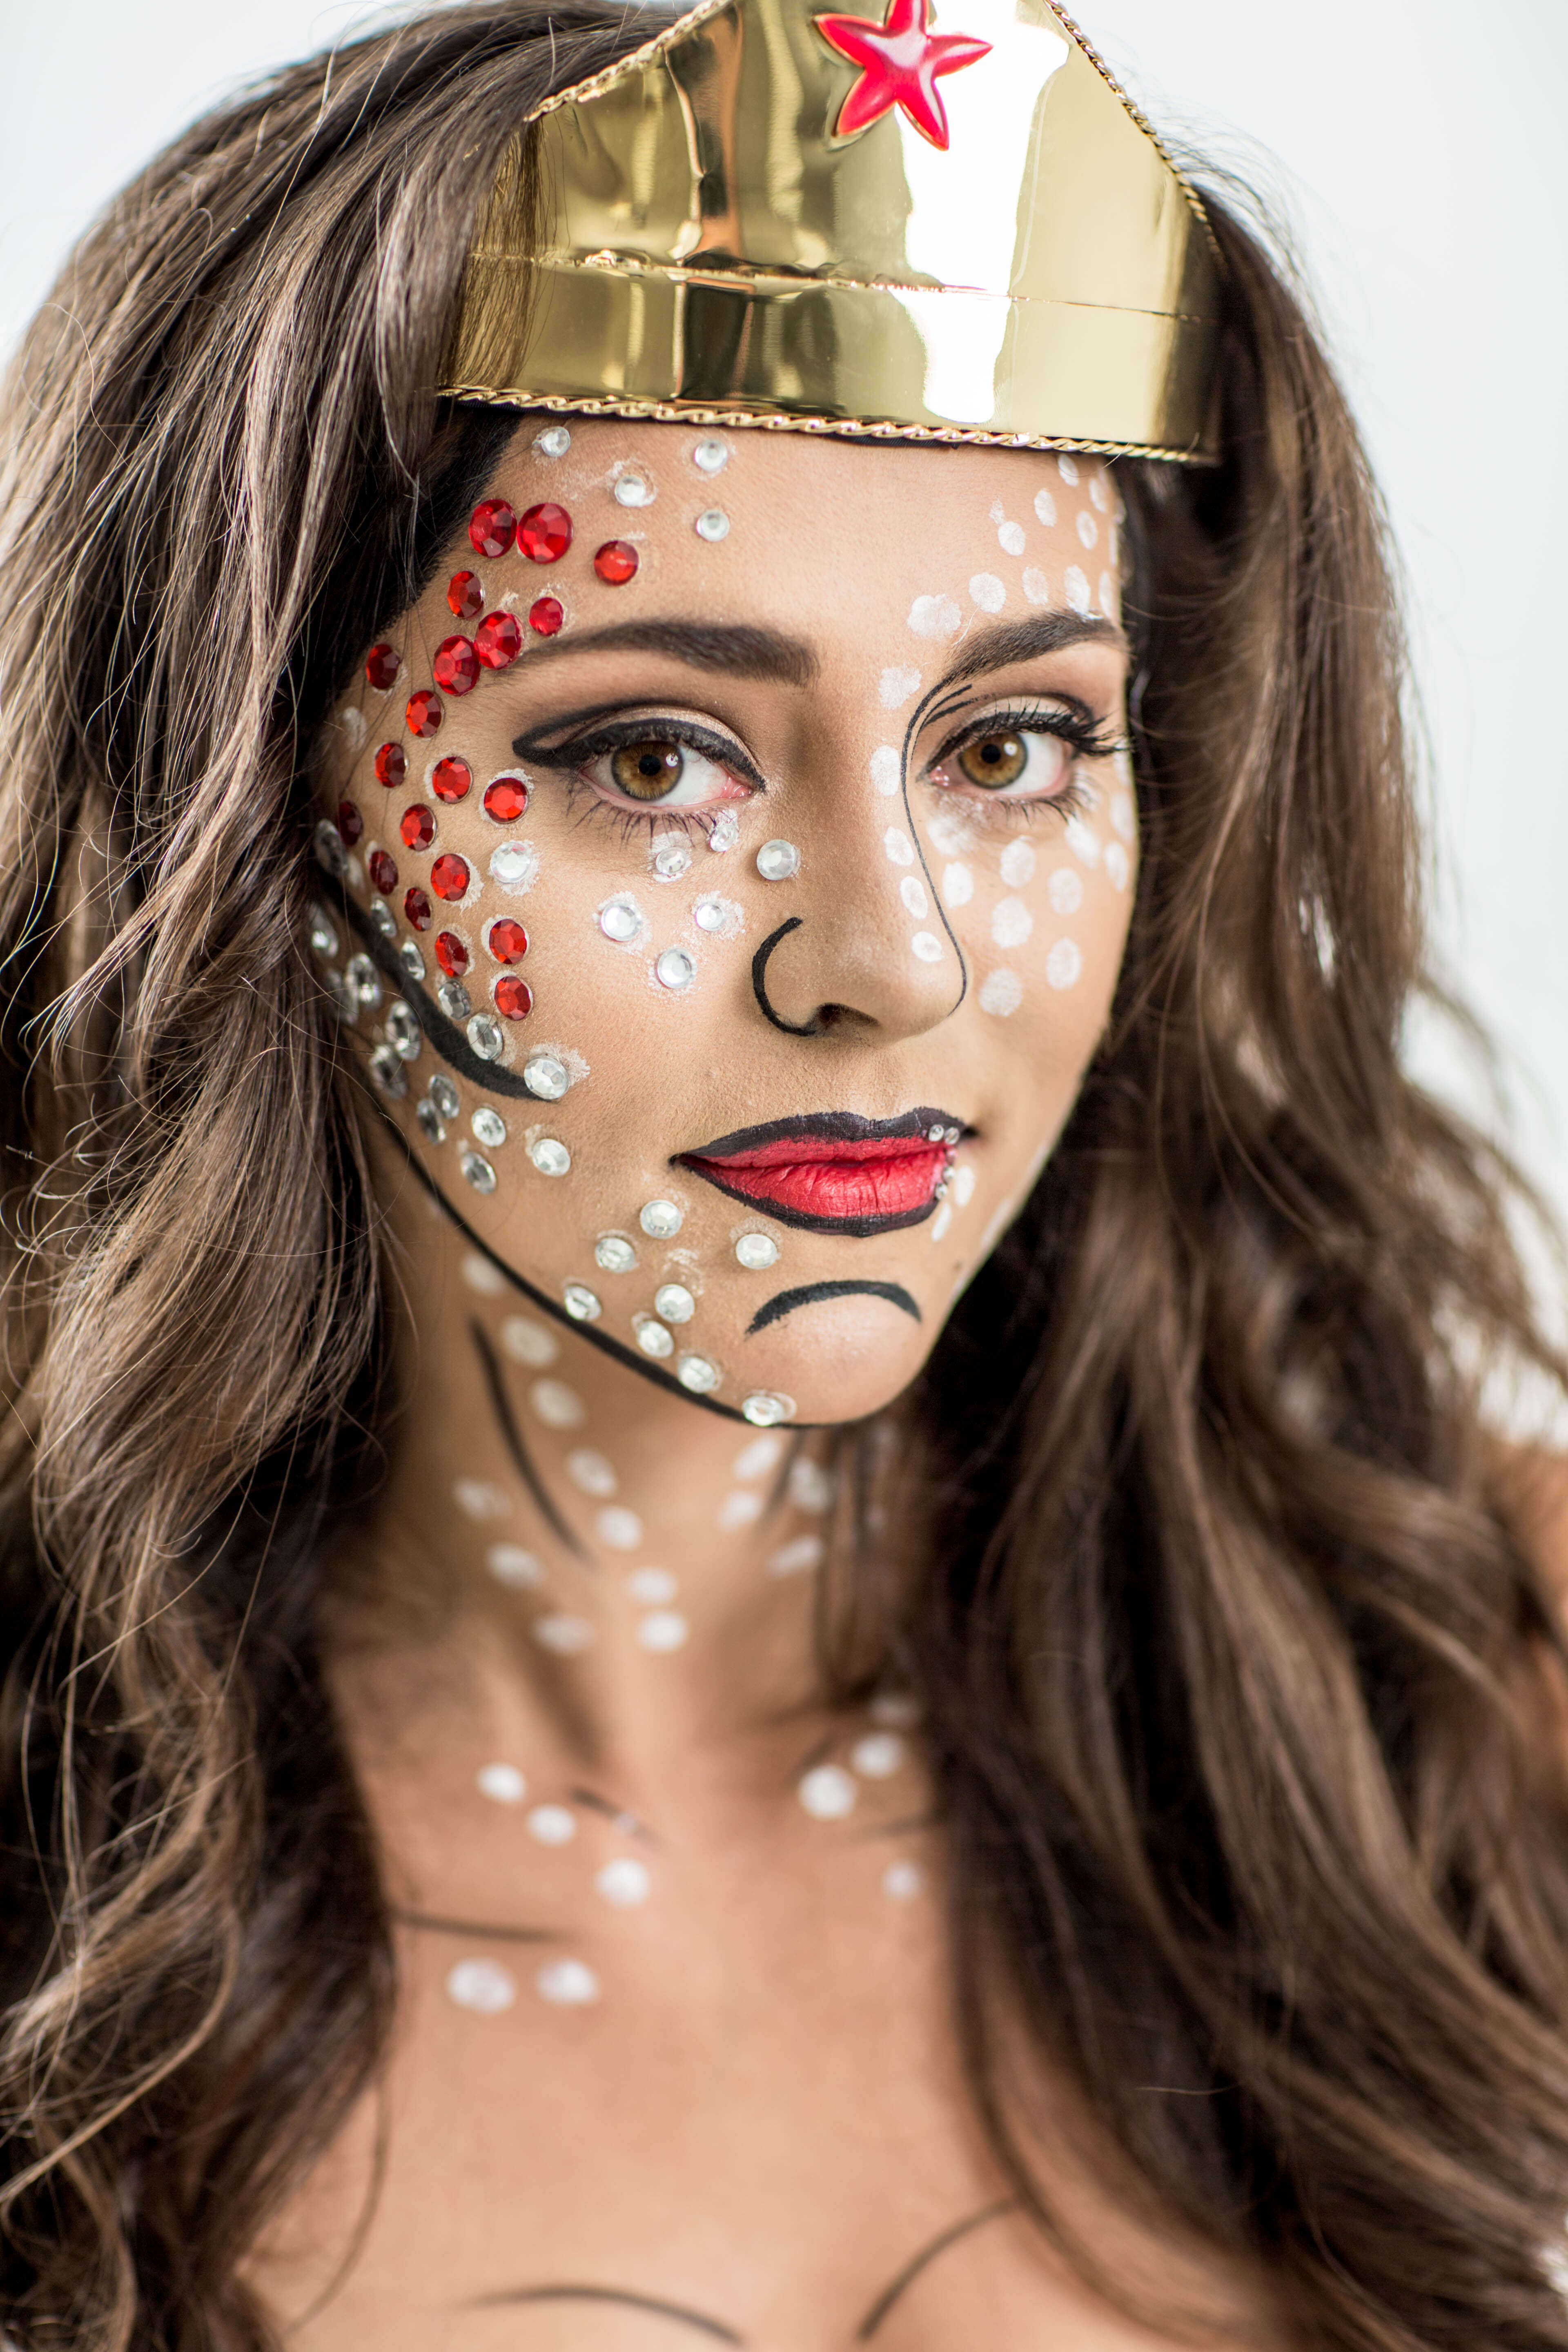 DIY Wonder Woman Costume with Pop Art Makeup. ""